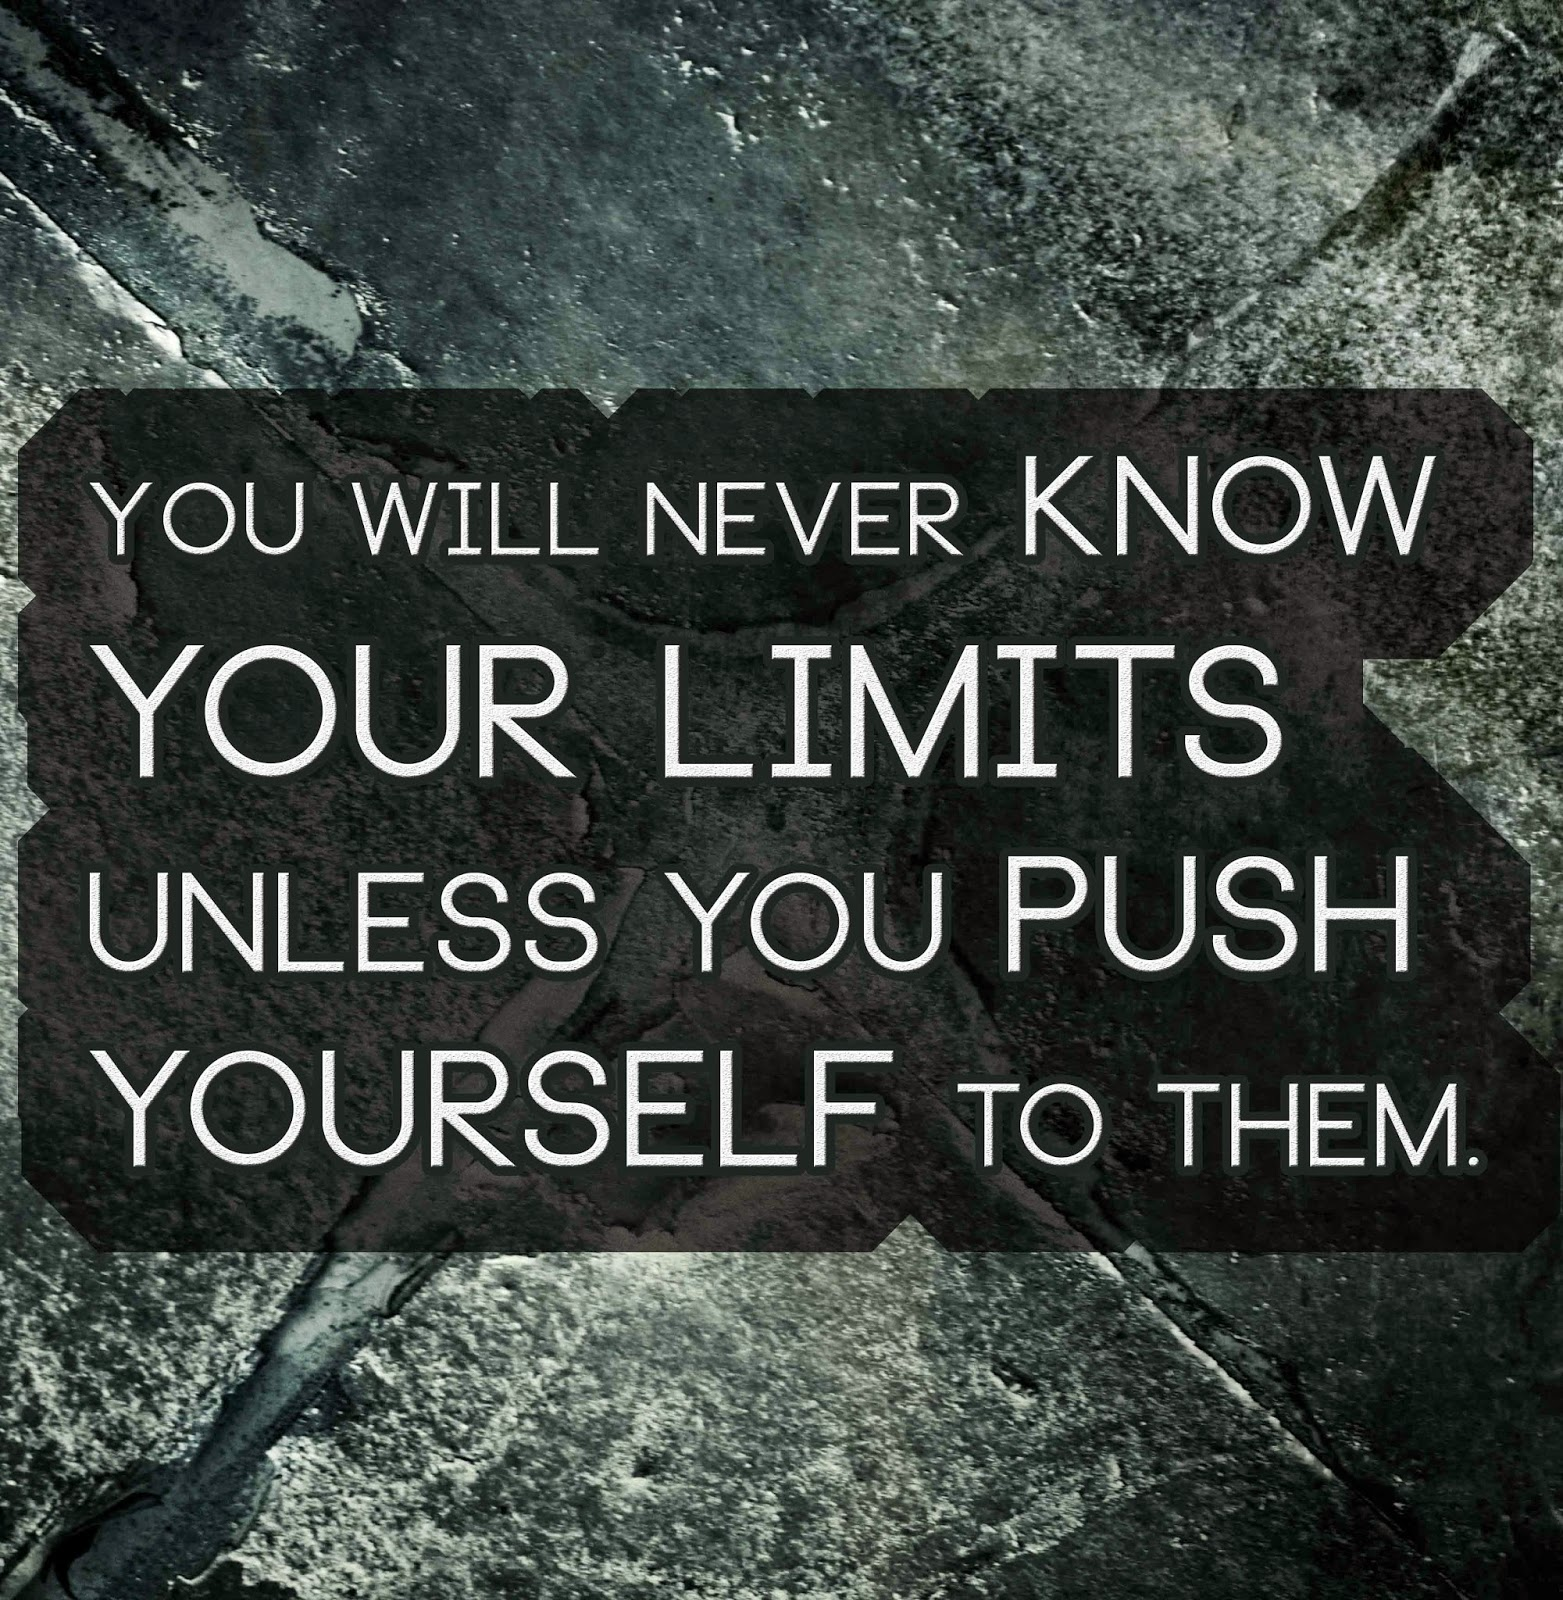 Quotes About Pushing The Limits 57 Quotes